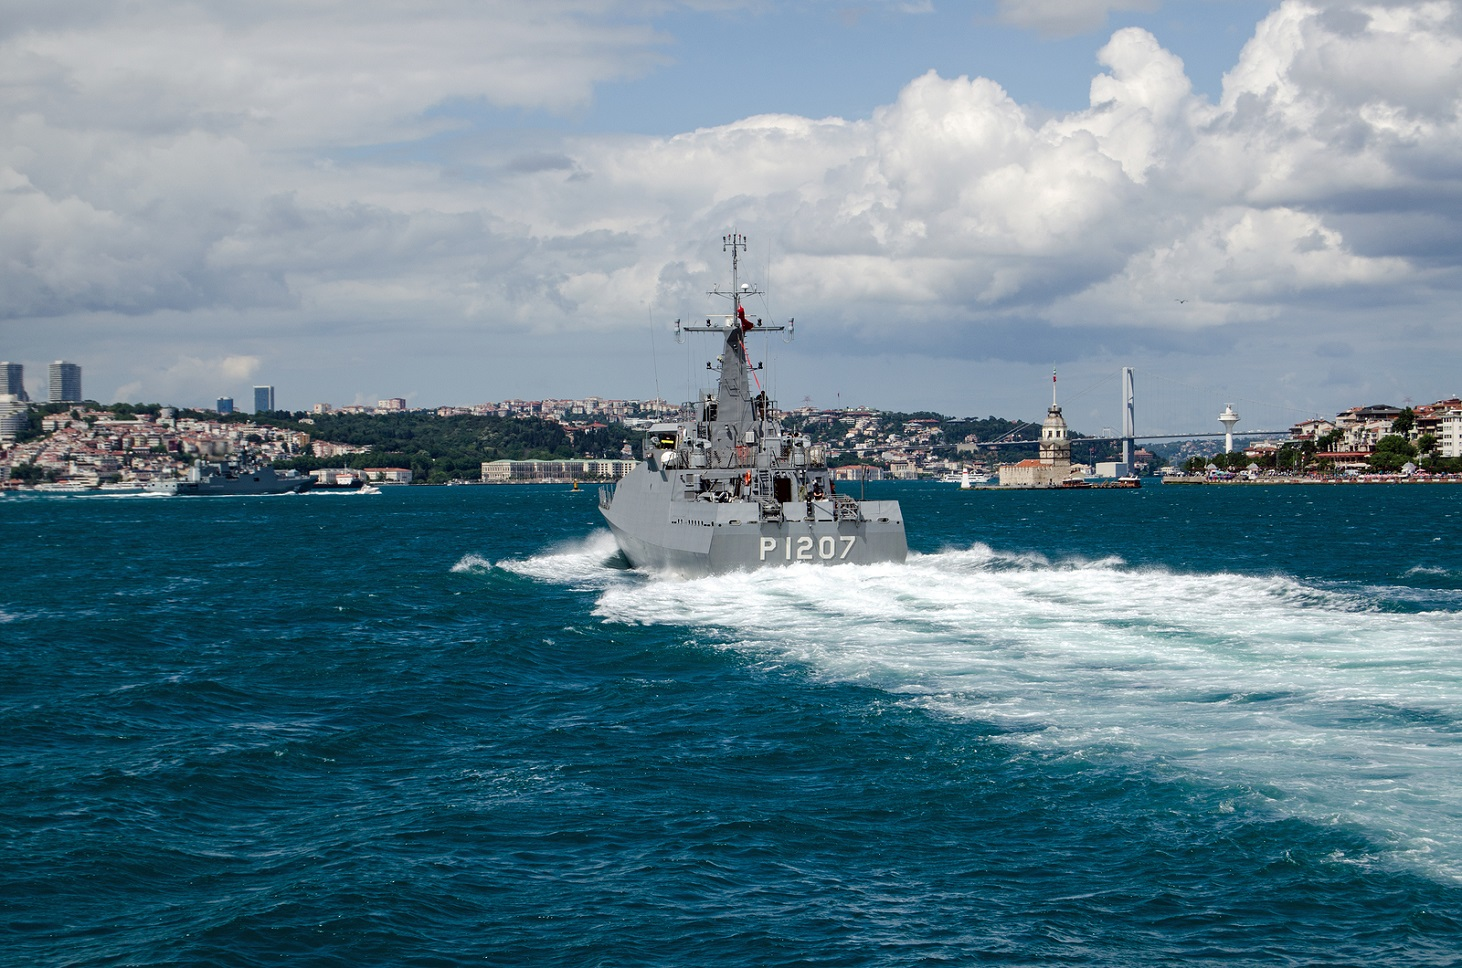 ISTANBUL TURKEY - JUNE 8 2016: The Navy patrol ship Tekirda sailing along the Bosphorus and the landmark Maiden's Tower in Uskudar. The Turkish ship is escorting the larger Russian frigate Admiral Grigorovich which can be seen to the left